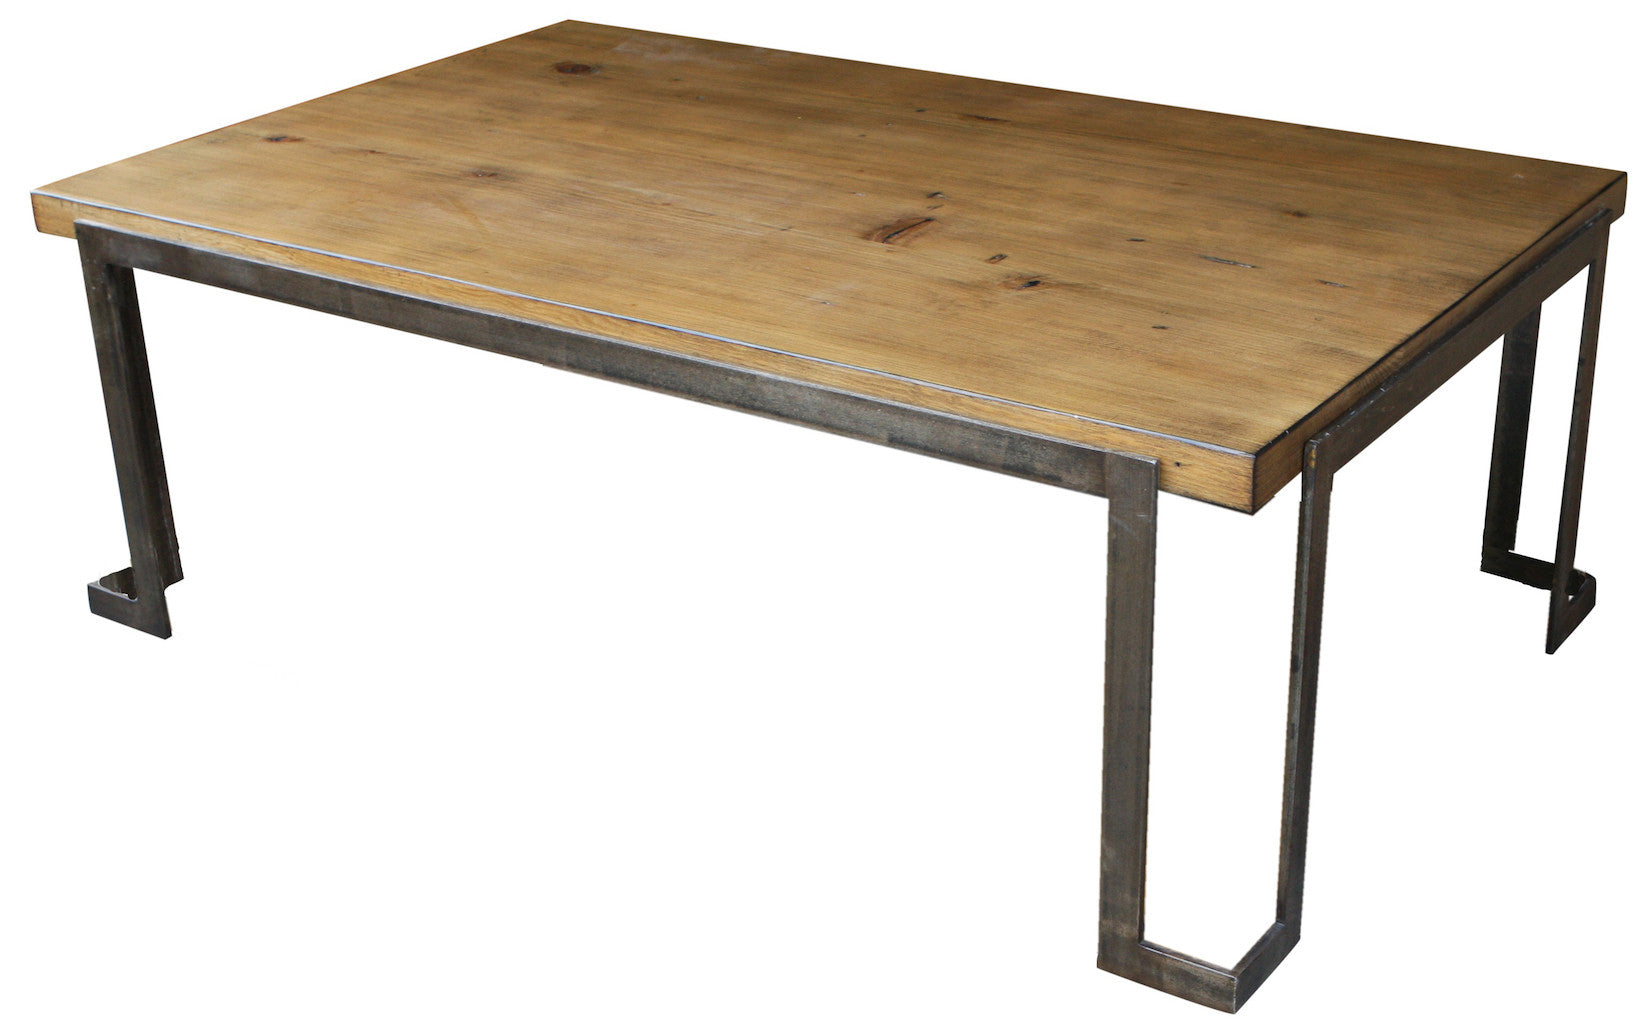 Chicago Industrial Steel And Cement Coffee Table Custom Built In Los Angeles Mortise Tenon